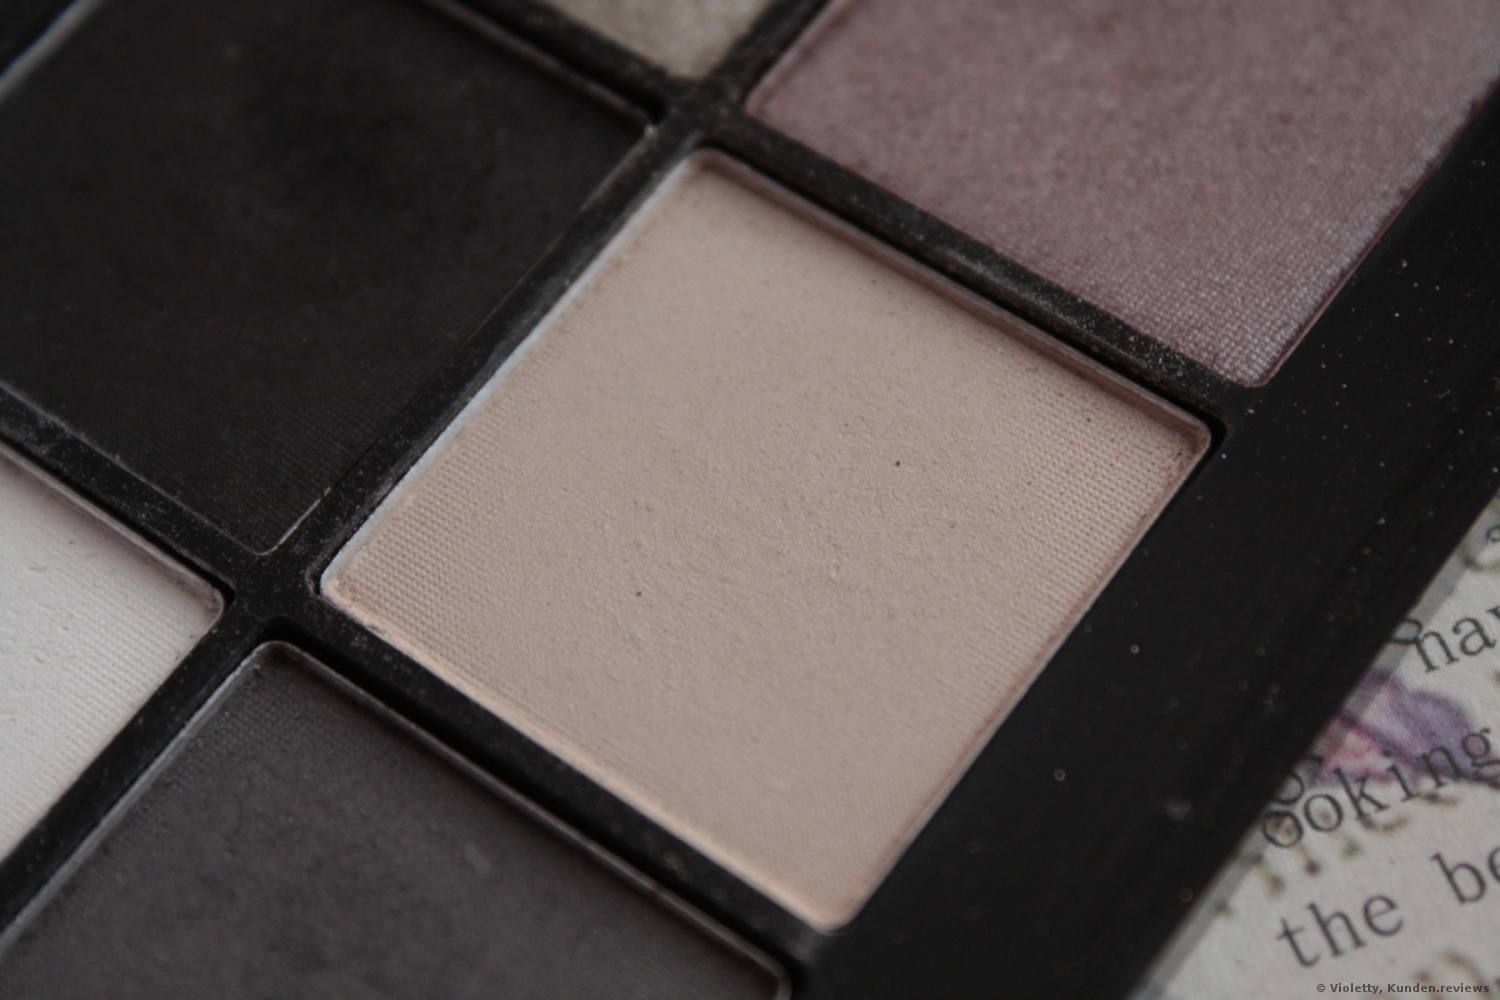 NYX Prof. Makeup Perfect Filter Shadow Palette #9